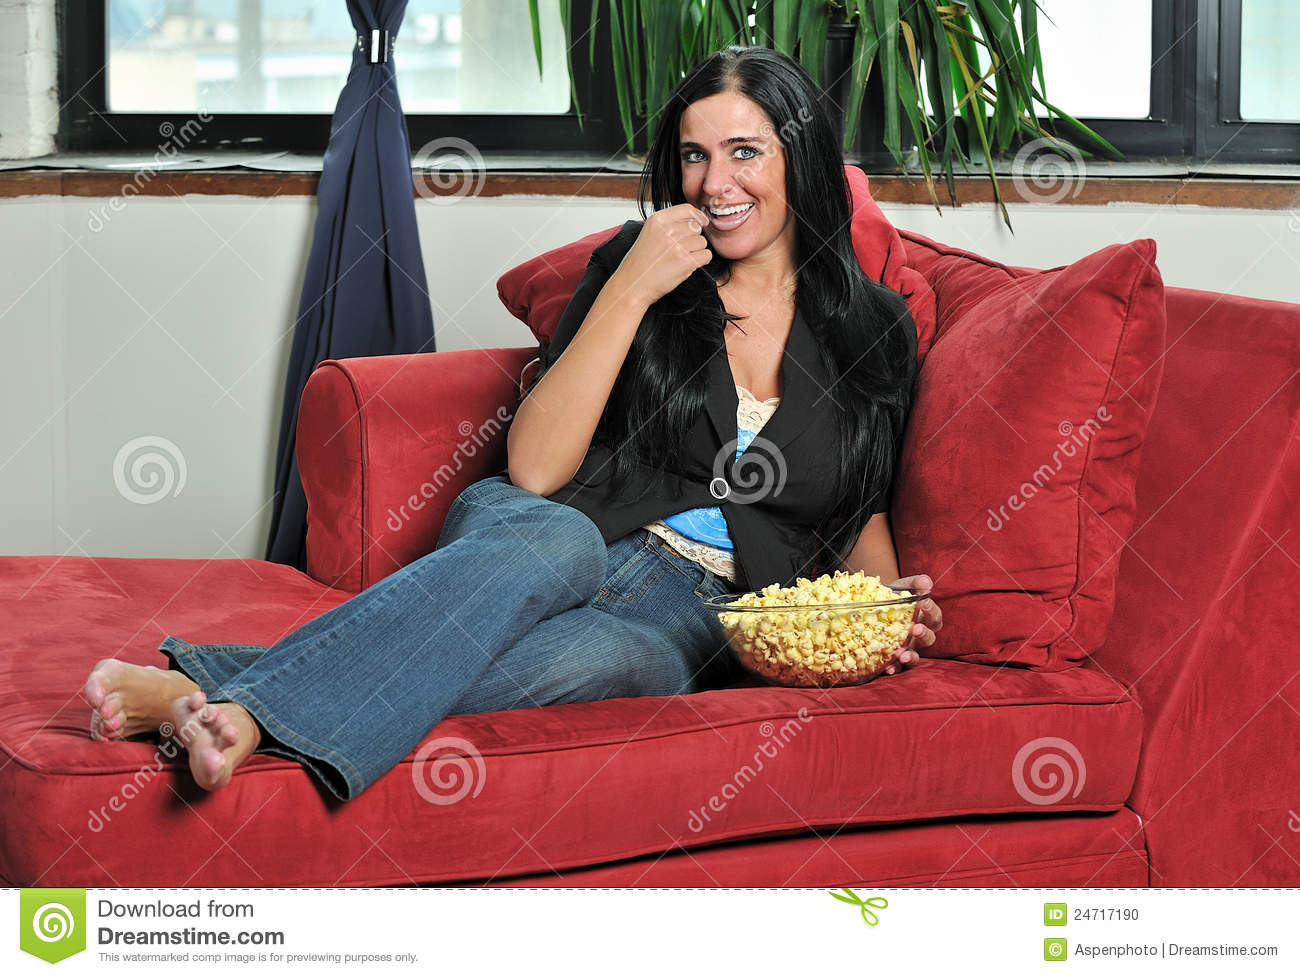 Woman resting barefoot on red chaise lounge chair eating popcorn